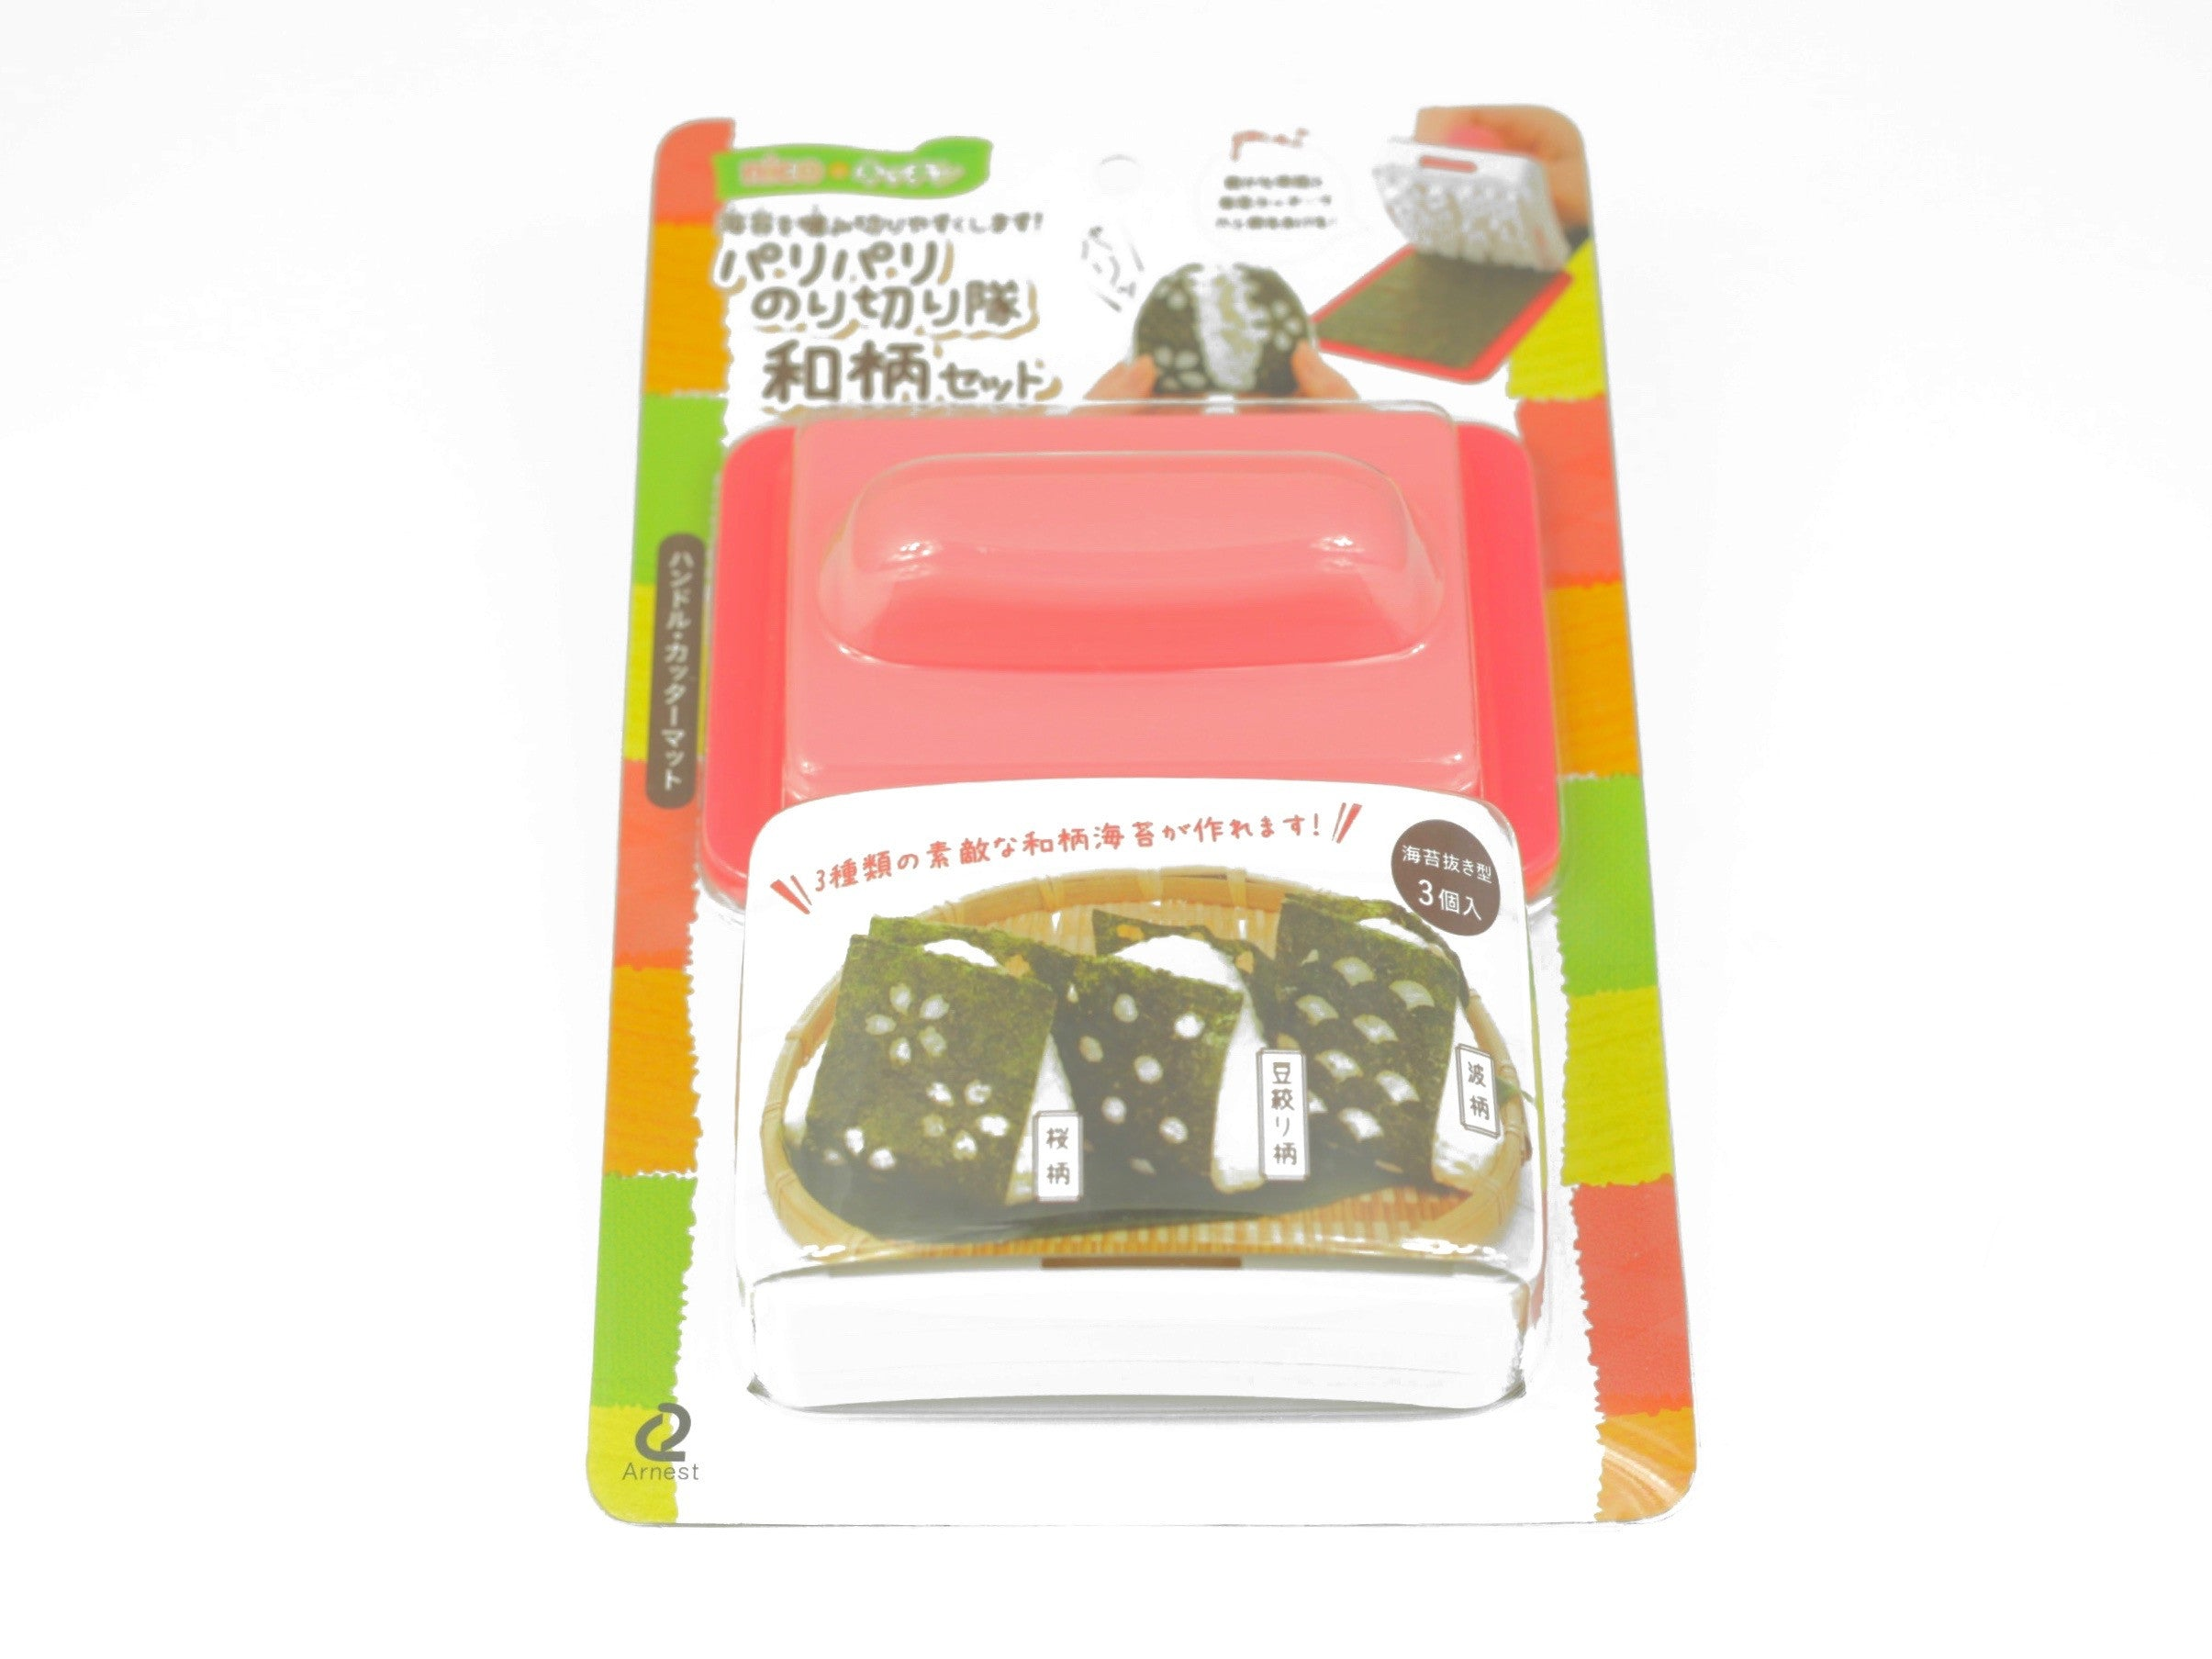 Pari Pari Nori Cutters | Onigiri Set by Arnest - Bento&co Japanese Bento Lunch Boxes and Kitchenware Specialists